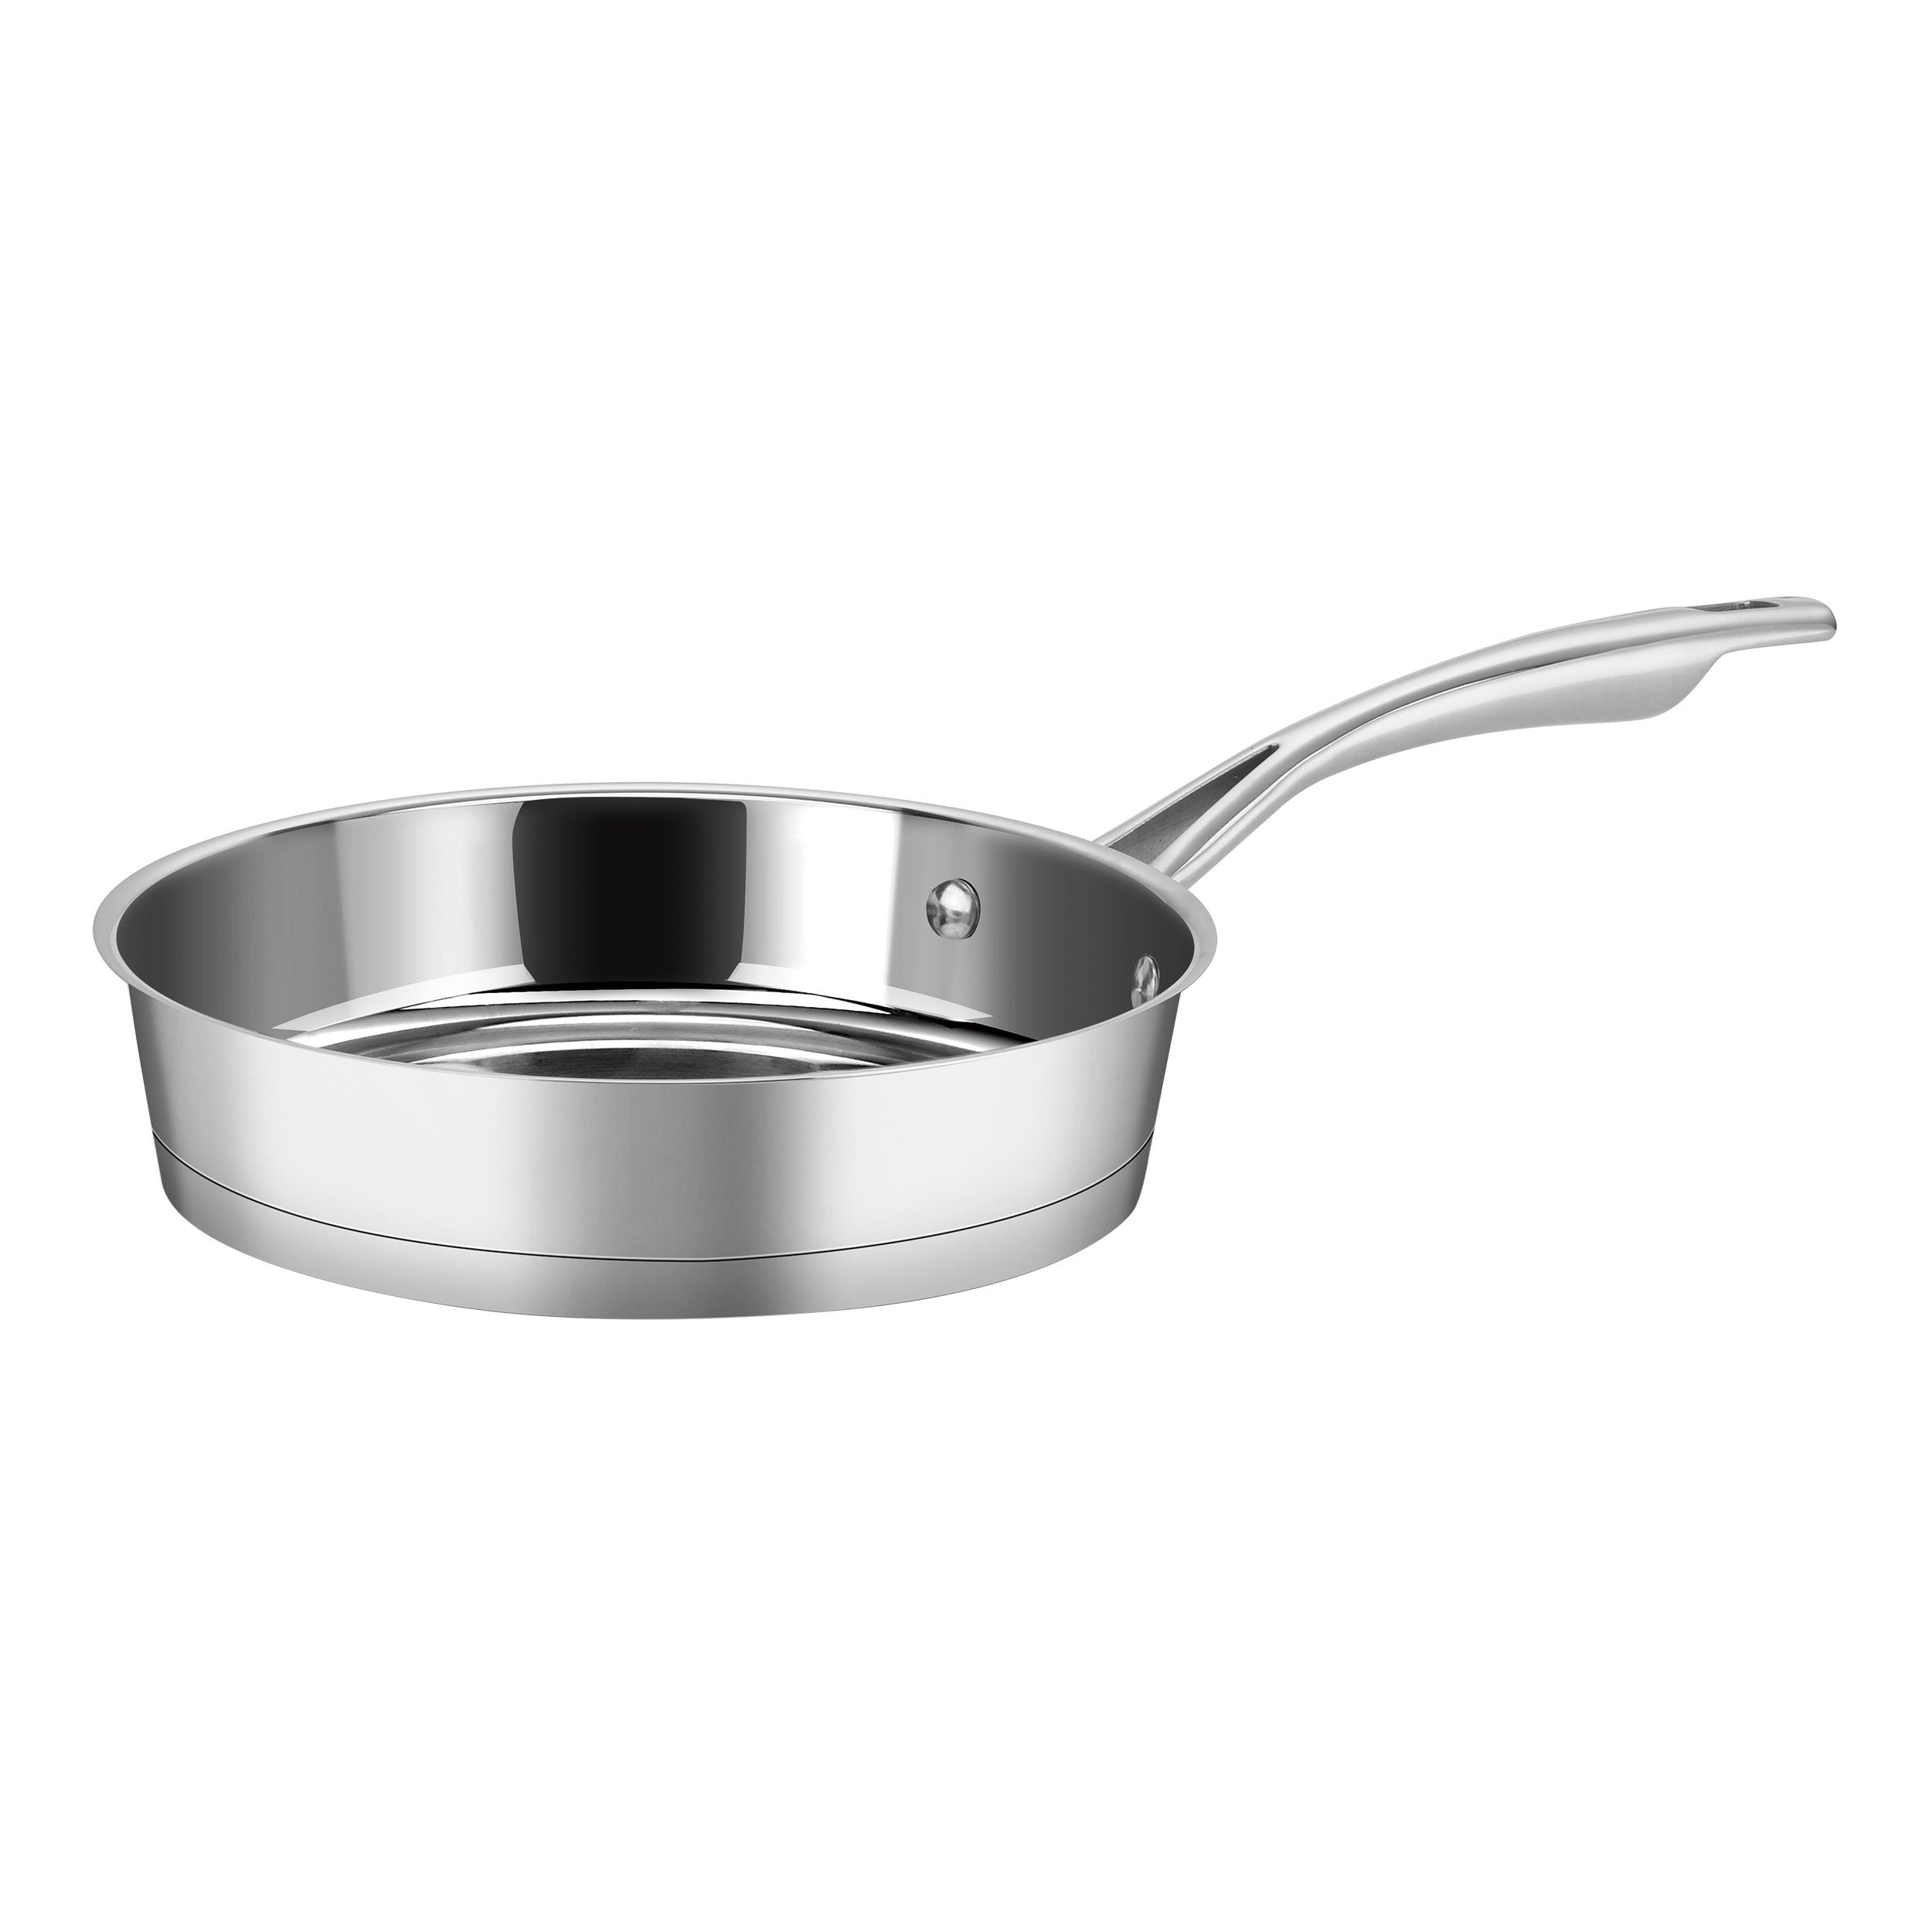 Cuisinart 72I22-20 Conical Induction Skillet, Medium, Stainless Steel